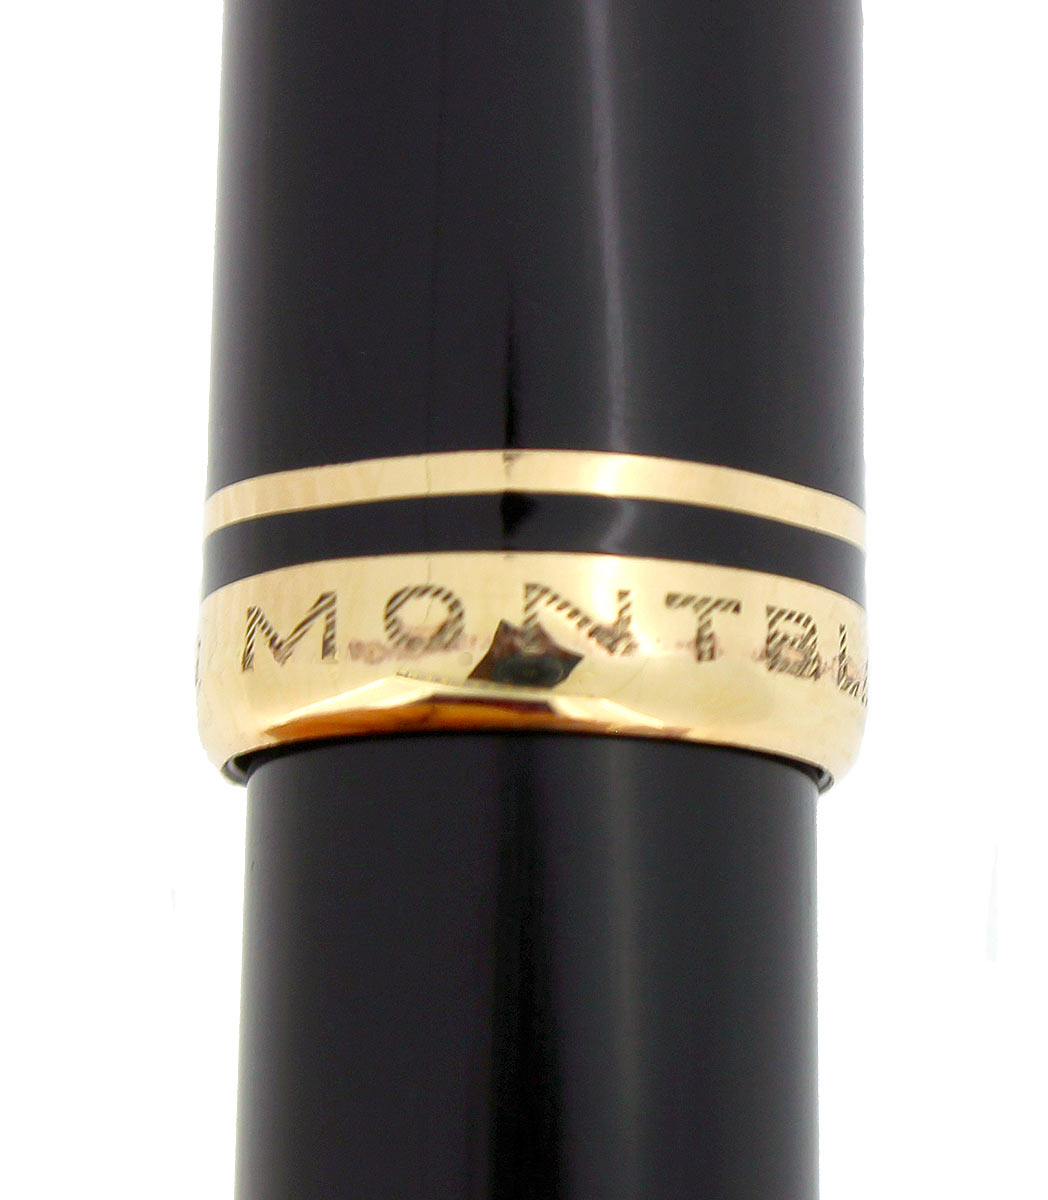 CIRCA 1957 MONTBLANC 264 FOUNTAIN PEN 14C F to BB SEMI-FLEX NIB RESTORED OFFERED BY ANTIQUE DIGGER